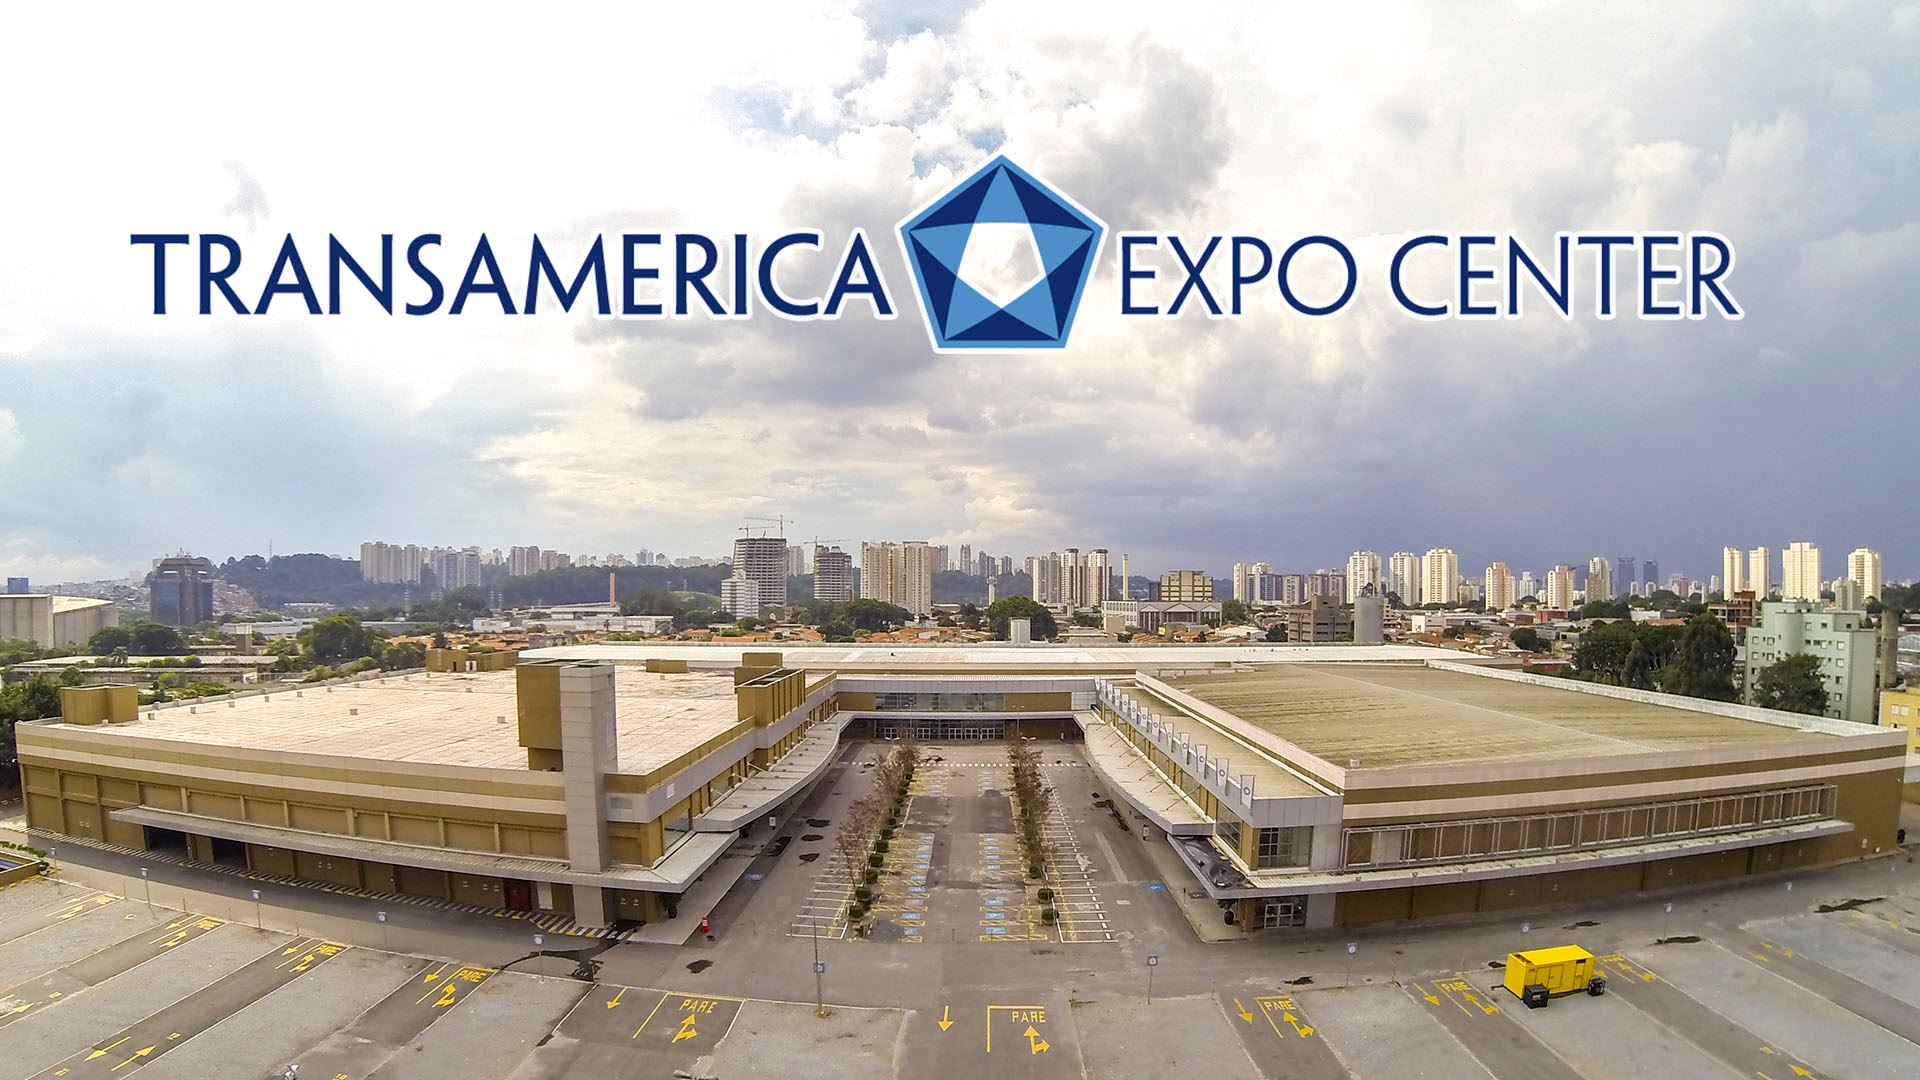 transamerica-expo-center-norte